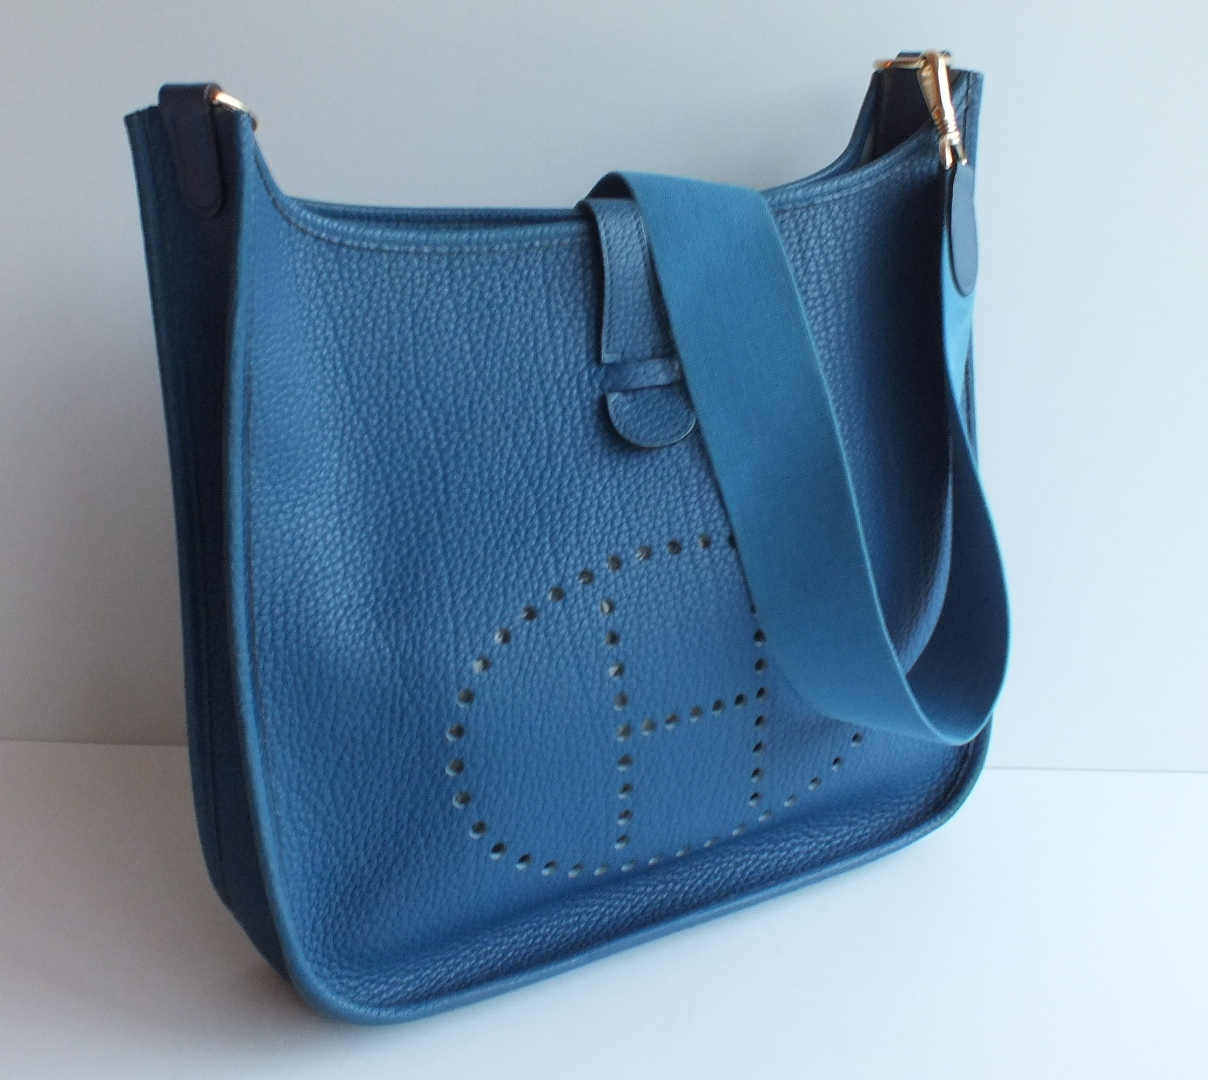 green birkin bag - active-auction-authentic-hermes-evelyne-gm-blue-sapphire-fjord-gold-hardware-rare-3.jpg